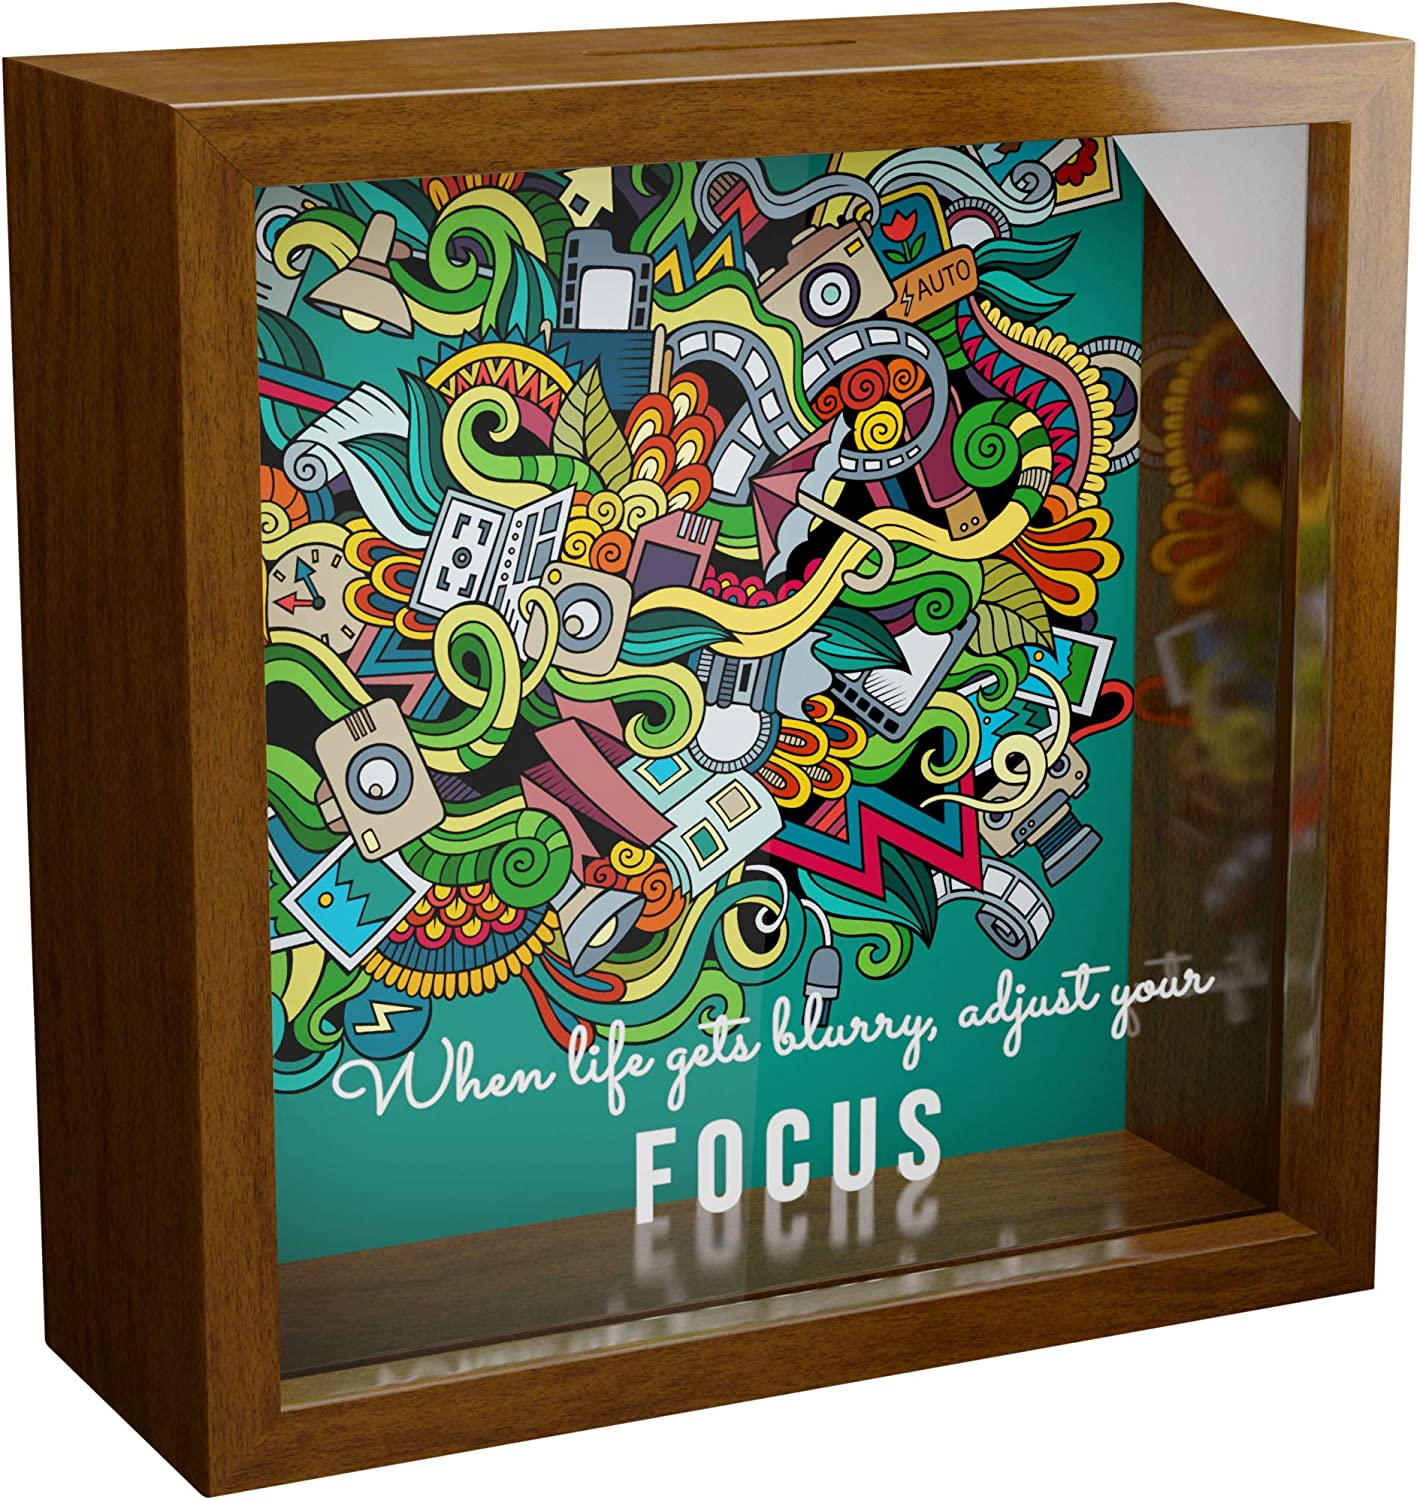 Motivational Gift | 6x6x2 Wooden Shadow Box Ideal for Photographers | Keepsake Frame Gift for Photography Lovers | Camera Wall Decor | Themed Memory Boxes for Office or Studio Decor